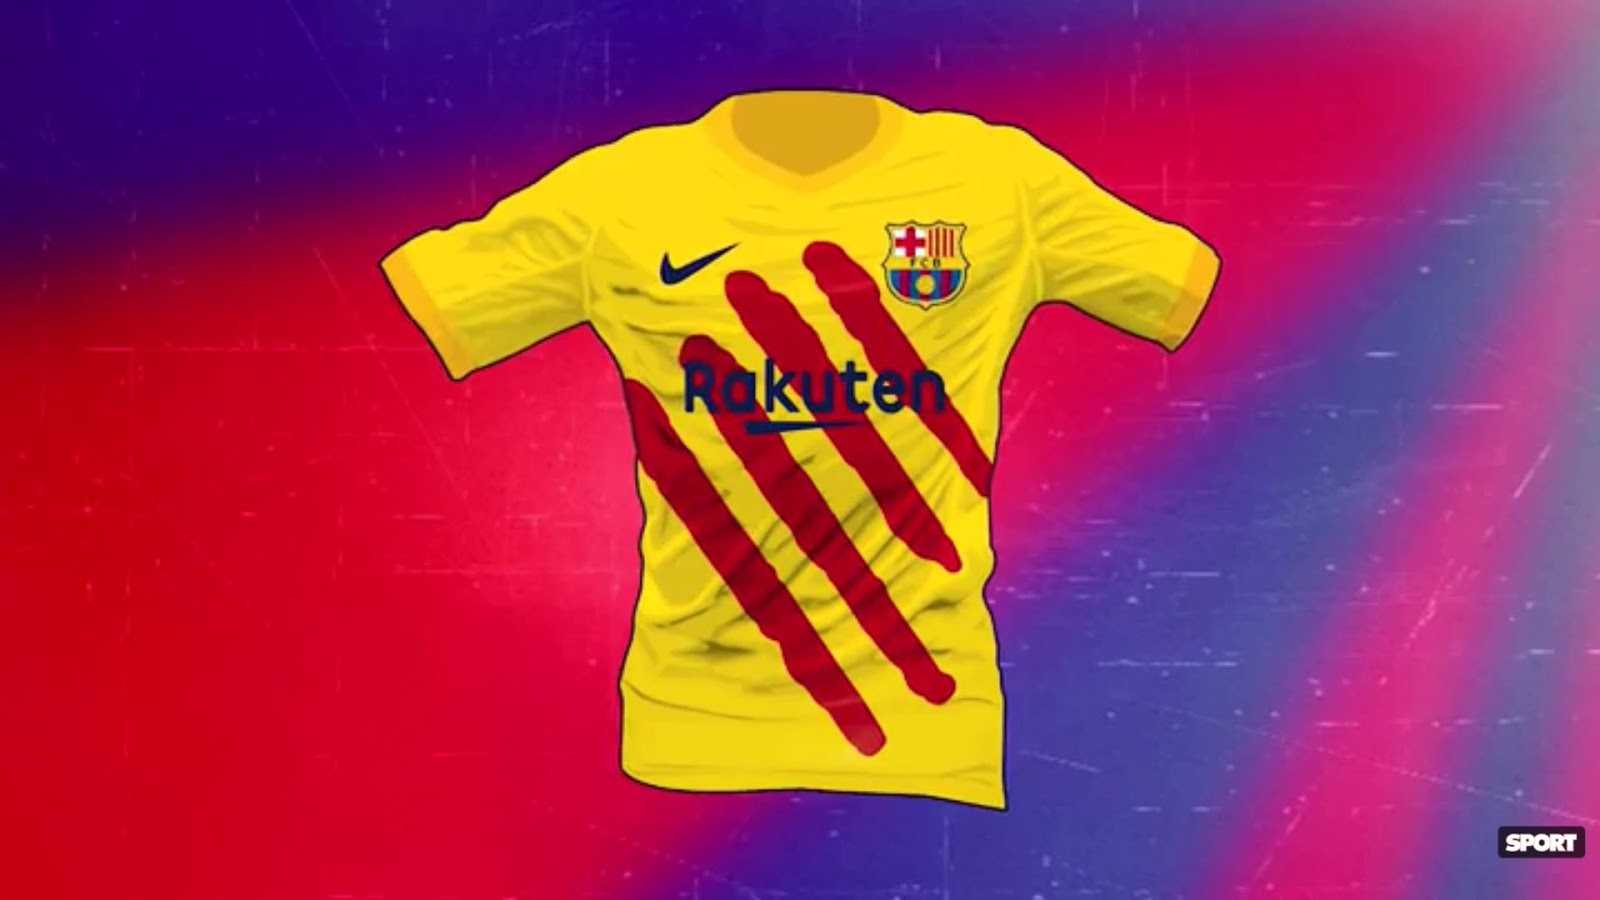 37ba98e1555 In a a bit of Twitter banter, Kappa Spain just reacted to the leak of the  Barcelona 19-20 fourth kit by Nike, claiming that it uses a design of their  ...